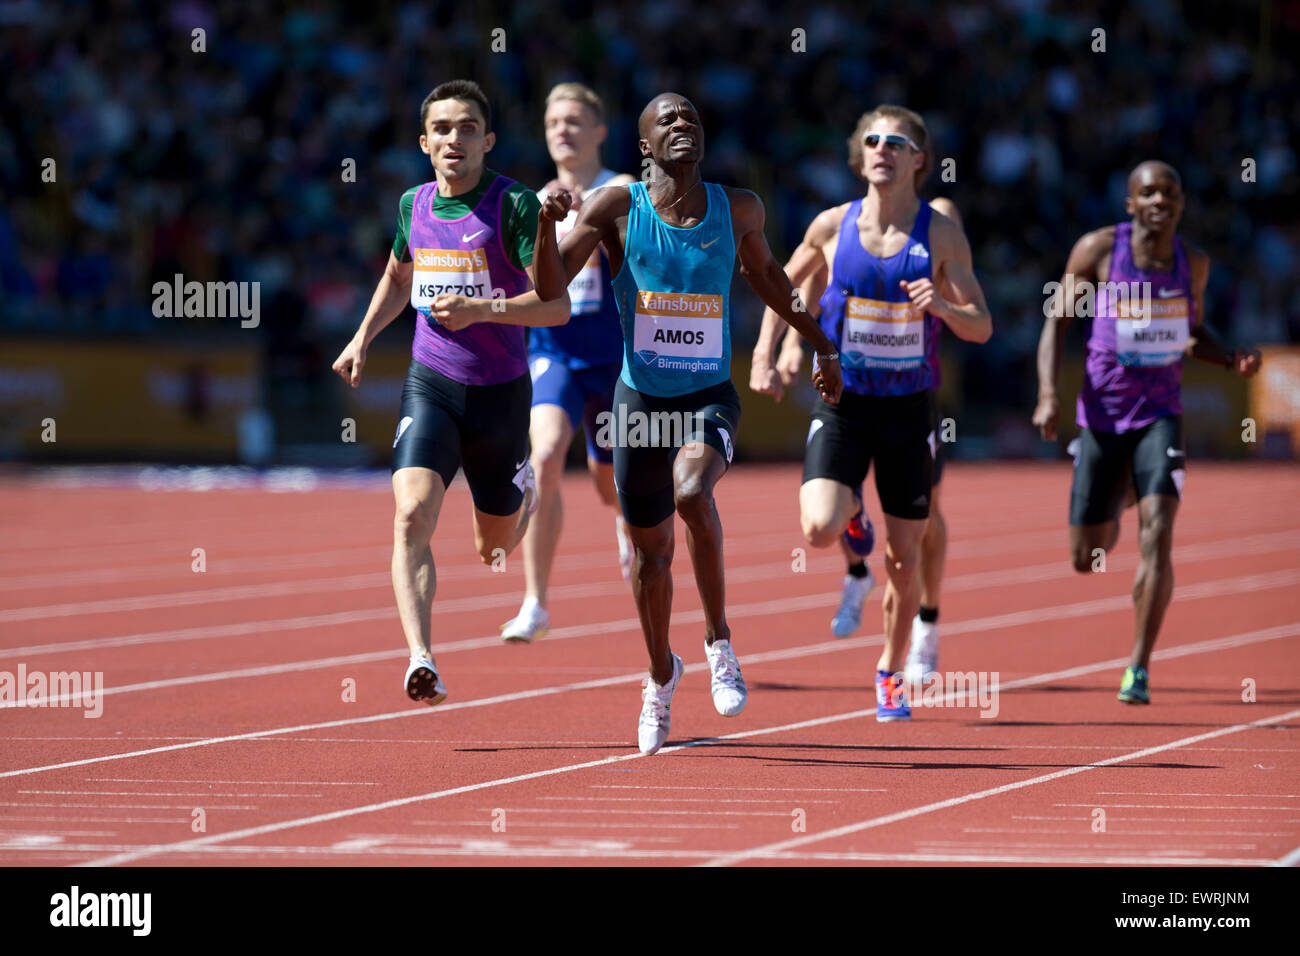 Nijel AMOS, Adam KSZCZOT Men's 800m, IAAF Diamond League 2015, Alexander Stadium, Birmingham, UK, 7th June 2015. - Stock Image